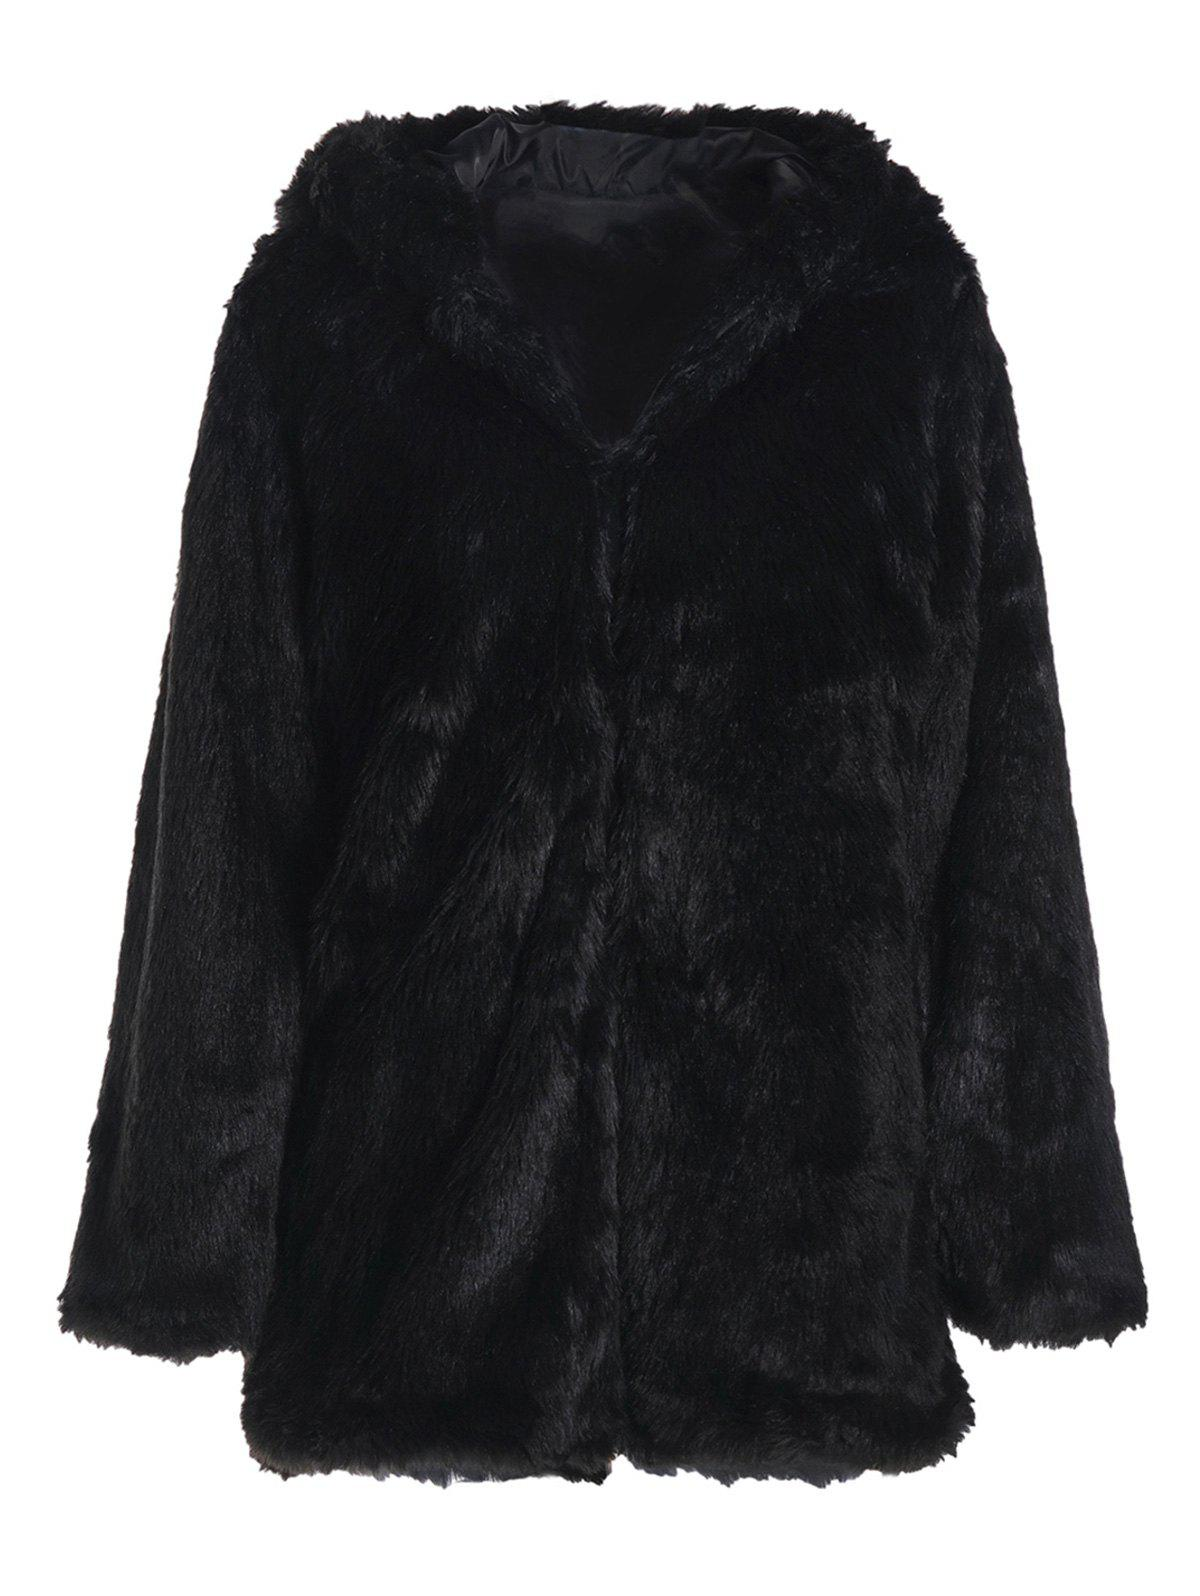 Noble Long Sleeve Hooded Faux Fur Women's Black Coat - BLACK 2XL